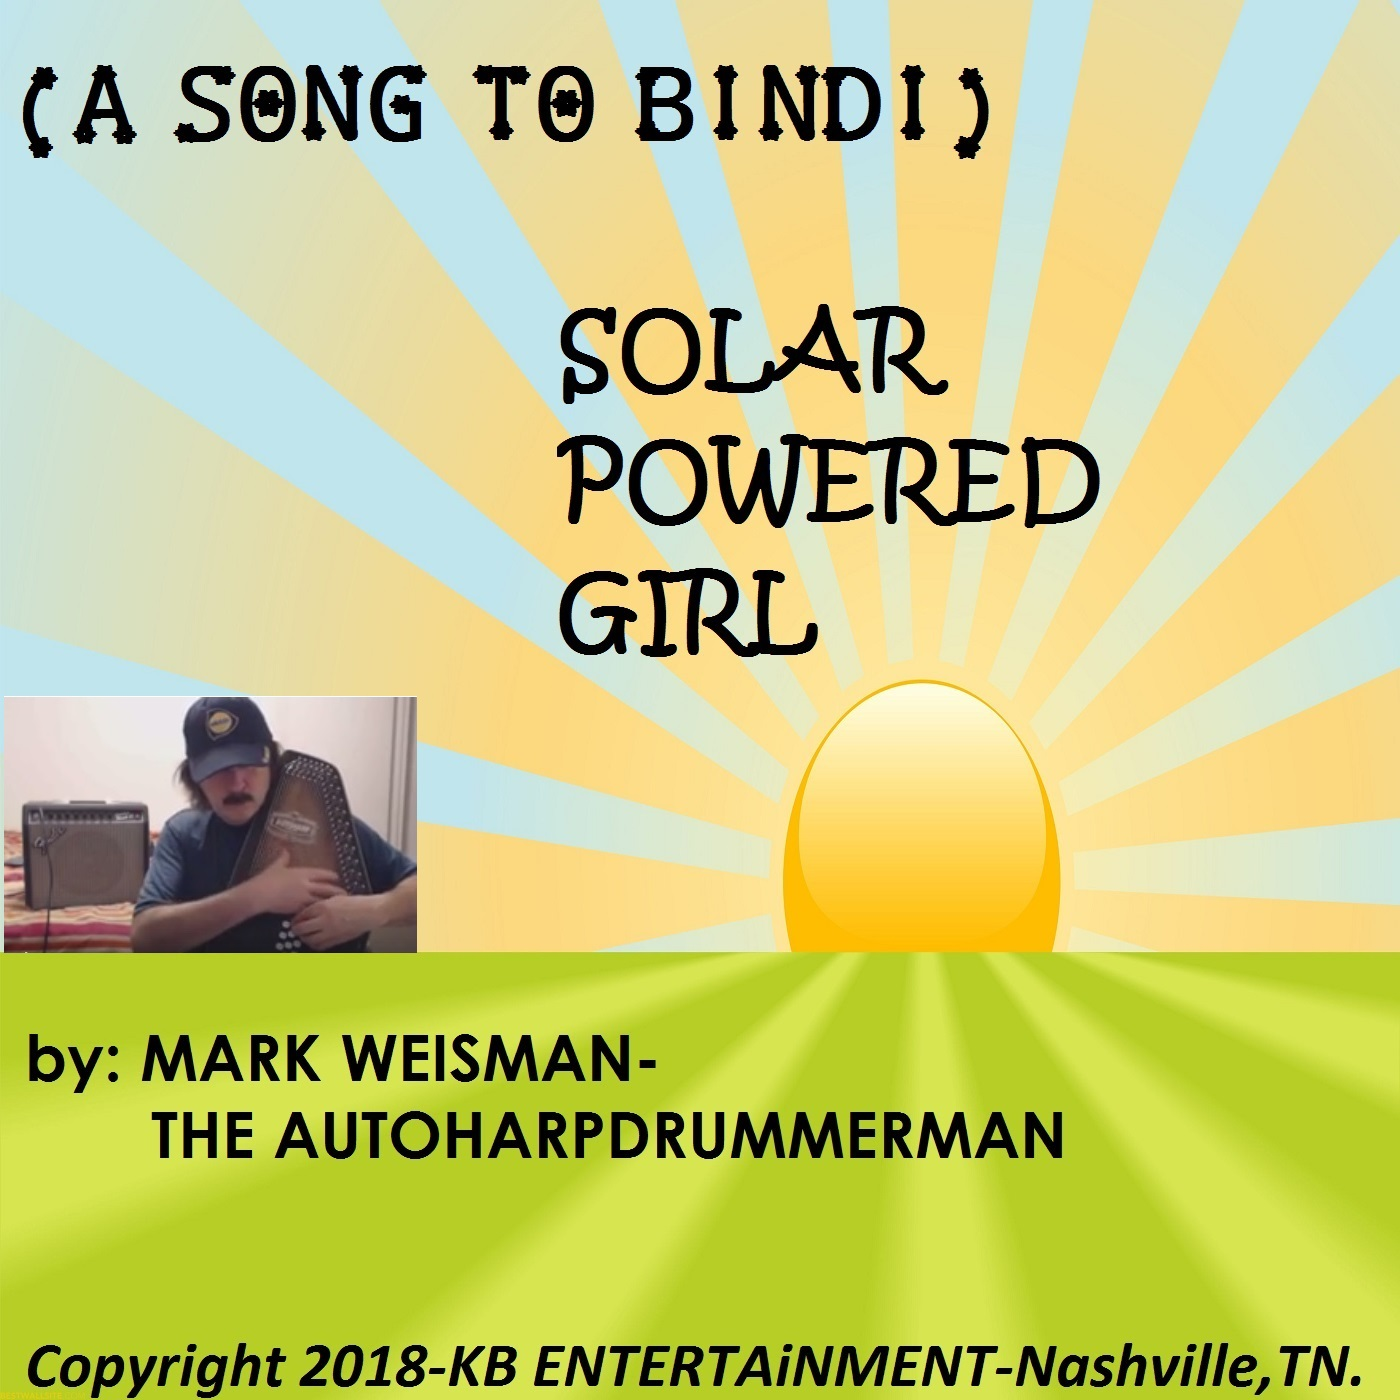 SOLAR POWERED GIRL (A SONG TO BINDI)